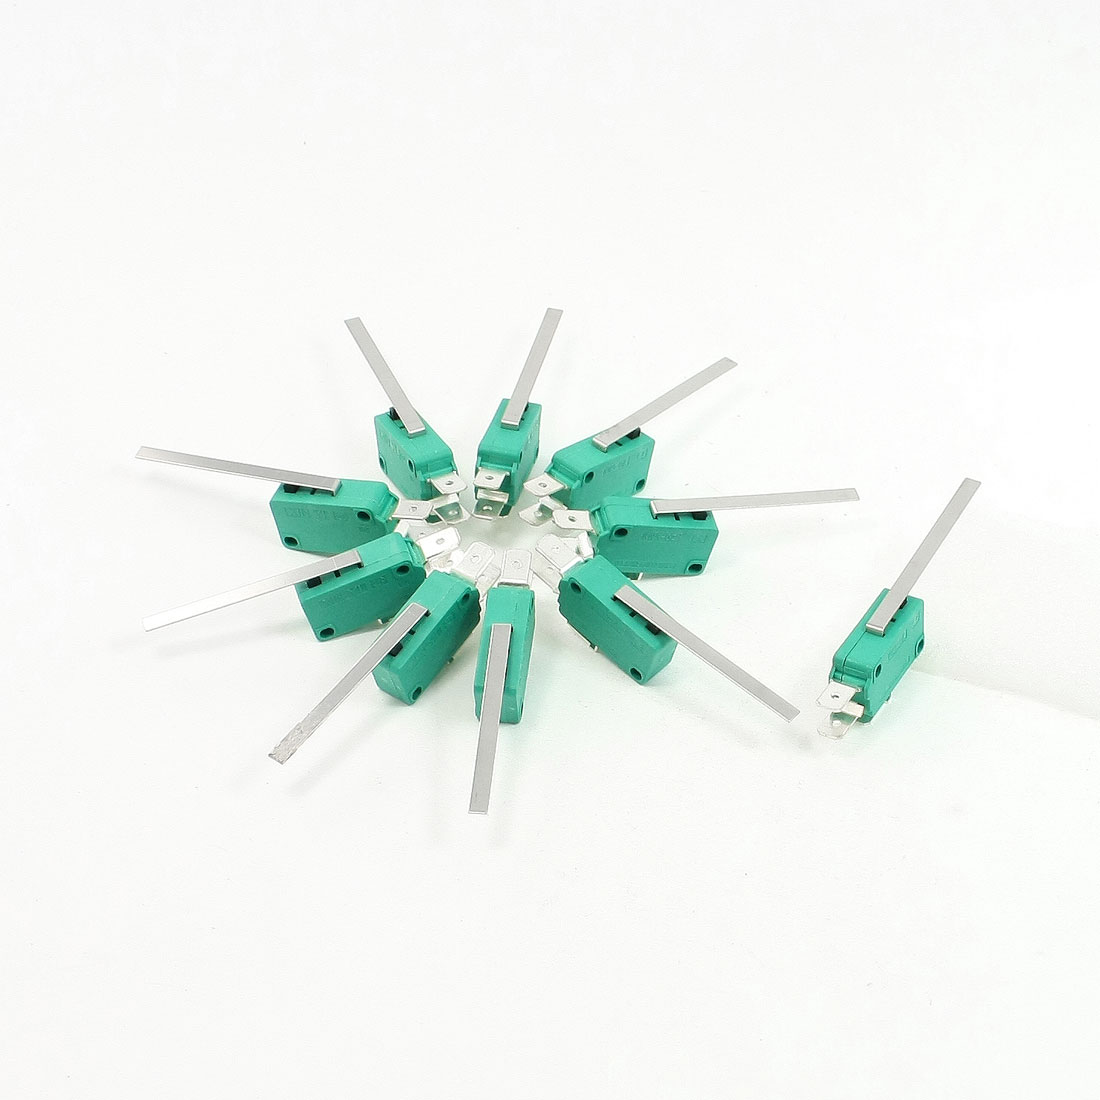 10 Pcs AC 250V 16A SPDT Long Straight Hinge Lever Miniature Micro Switch Green